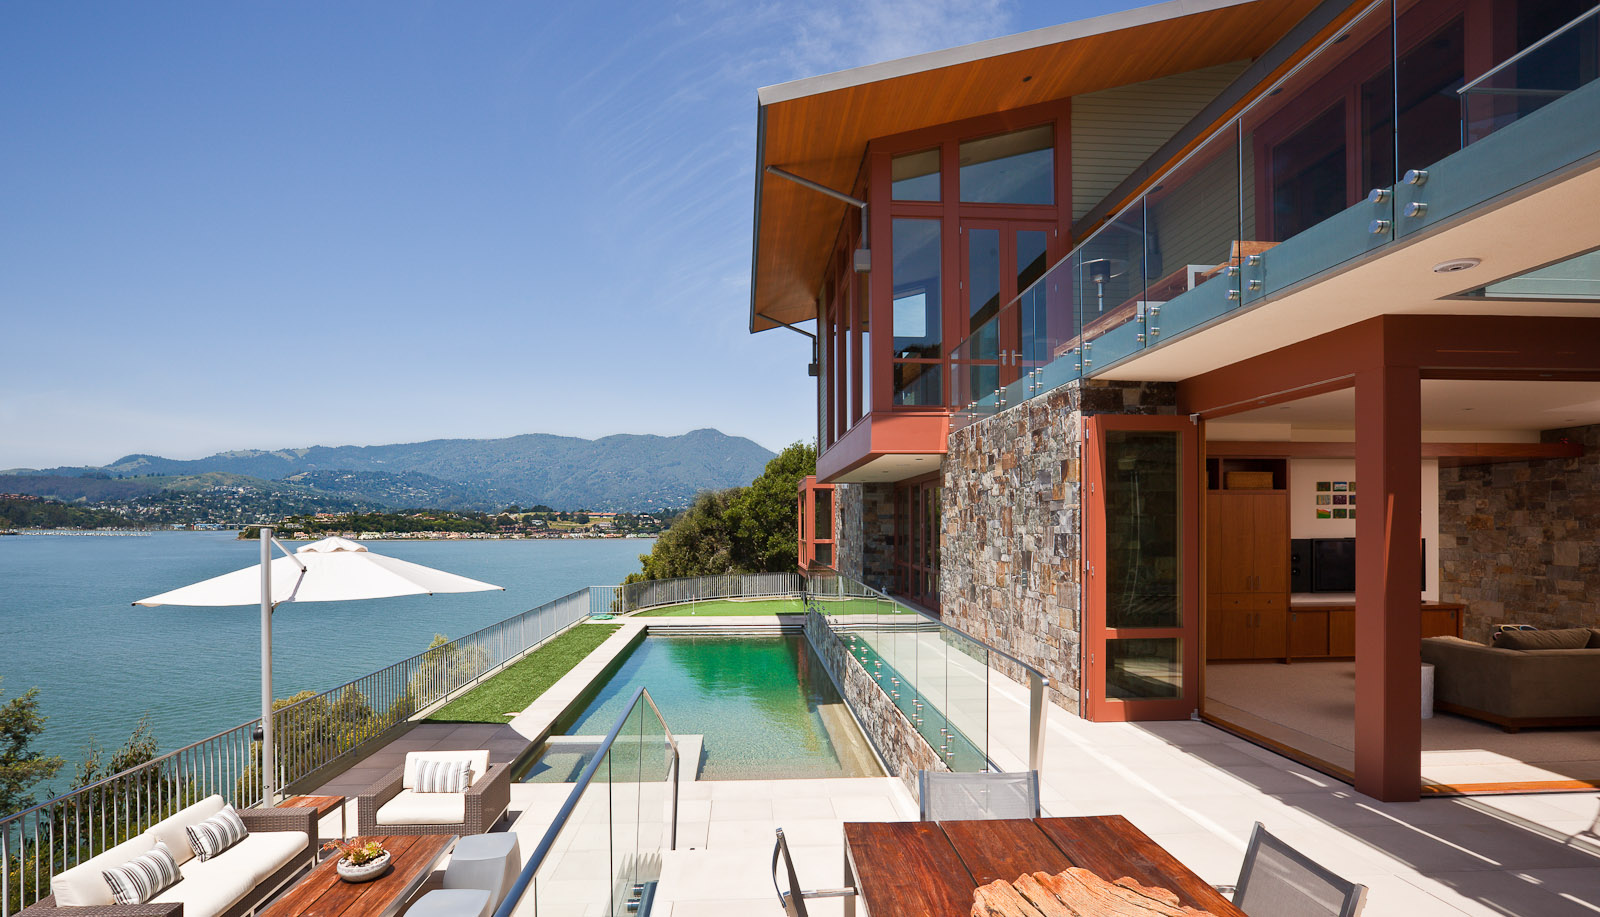 Belvedere home with a view across Richardson Bay to the Sausalito and Mt. Tamalpais. Residence designed by Sutton Suzuki Architects. Photo by Jay Graham